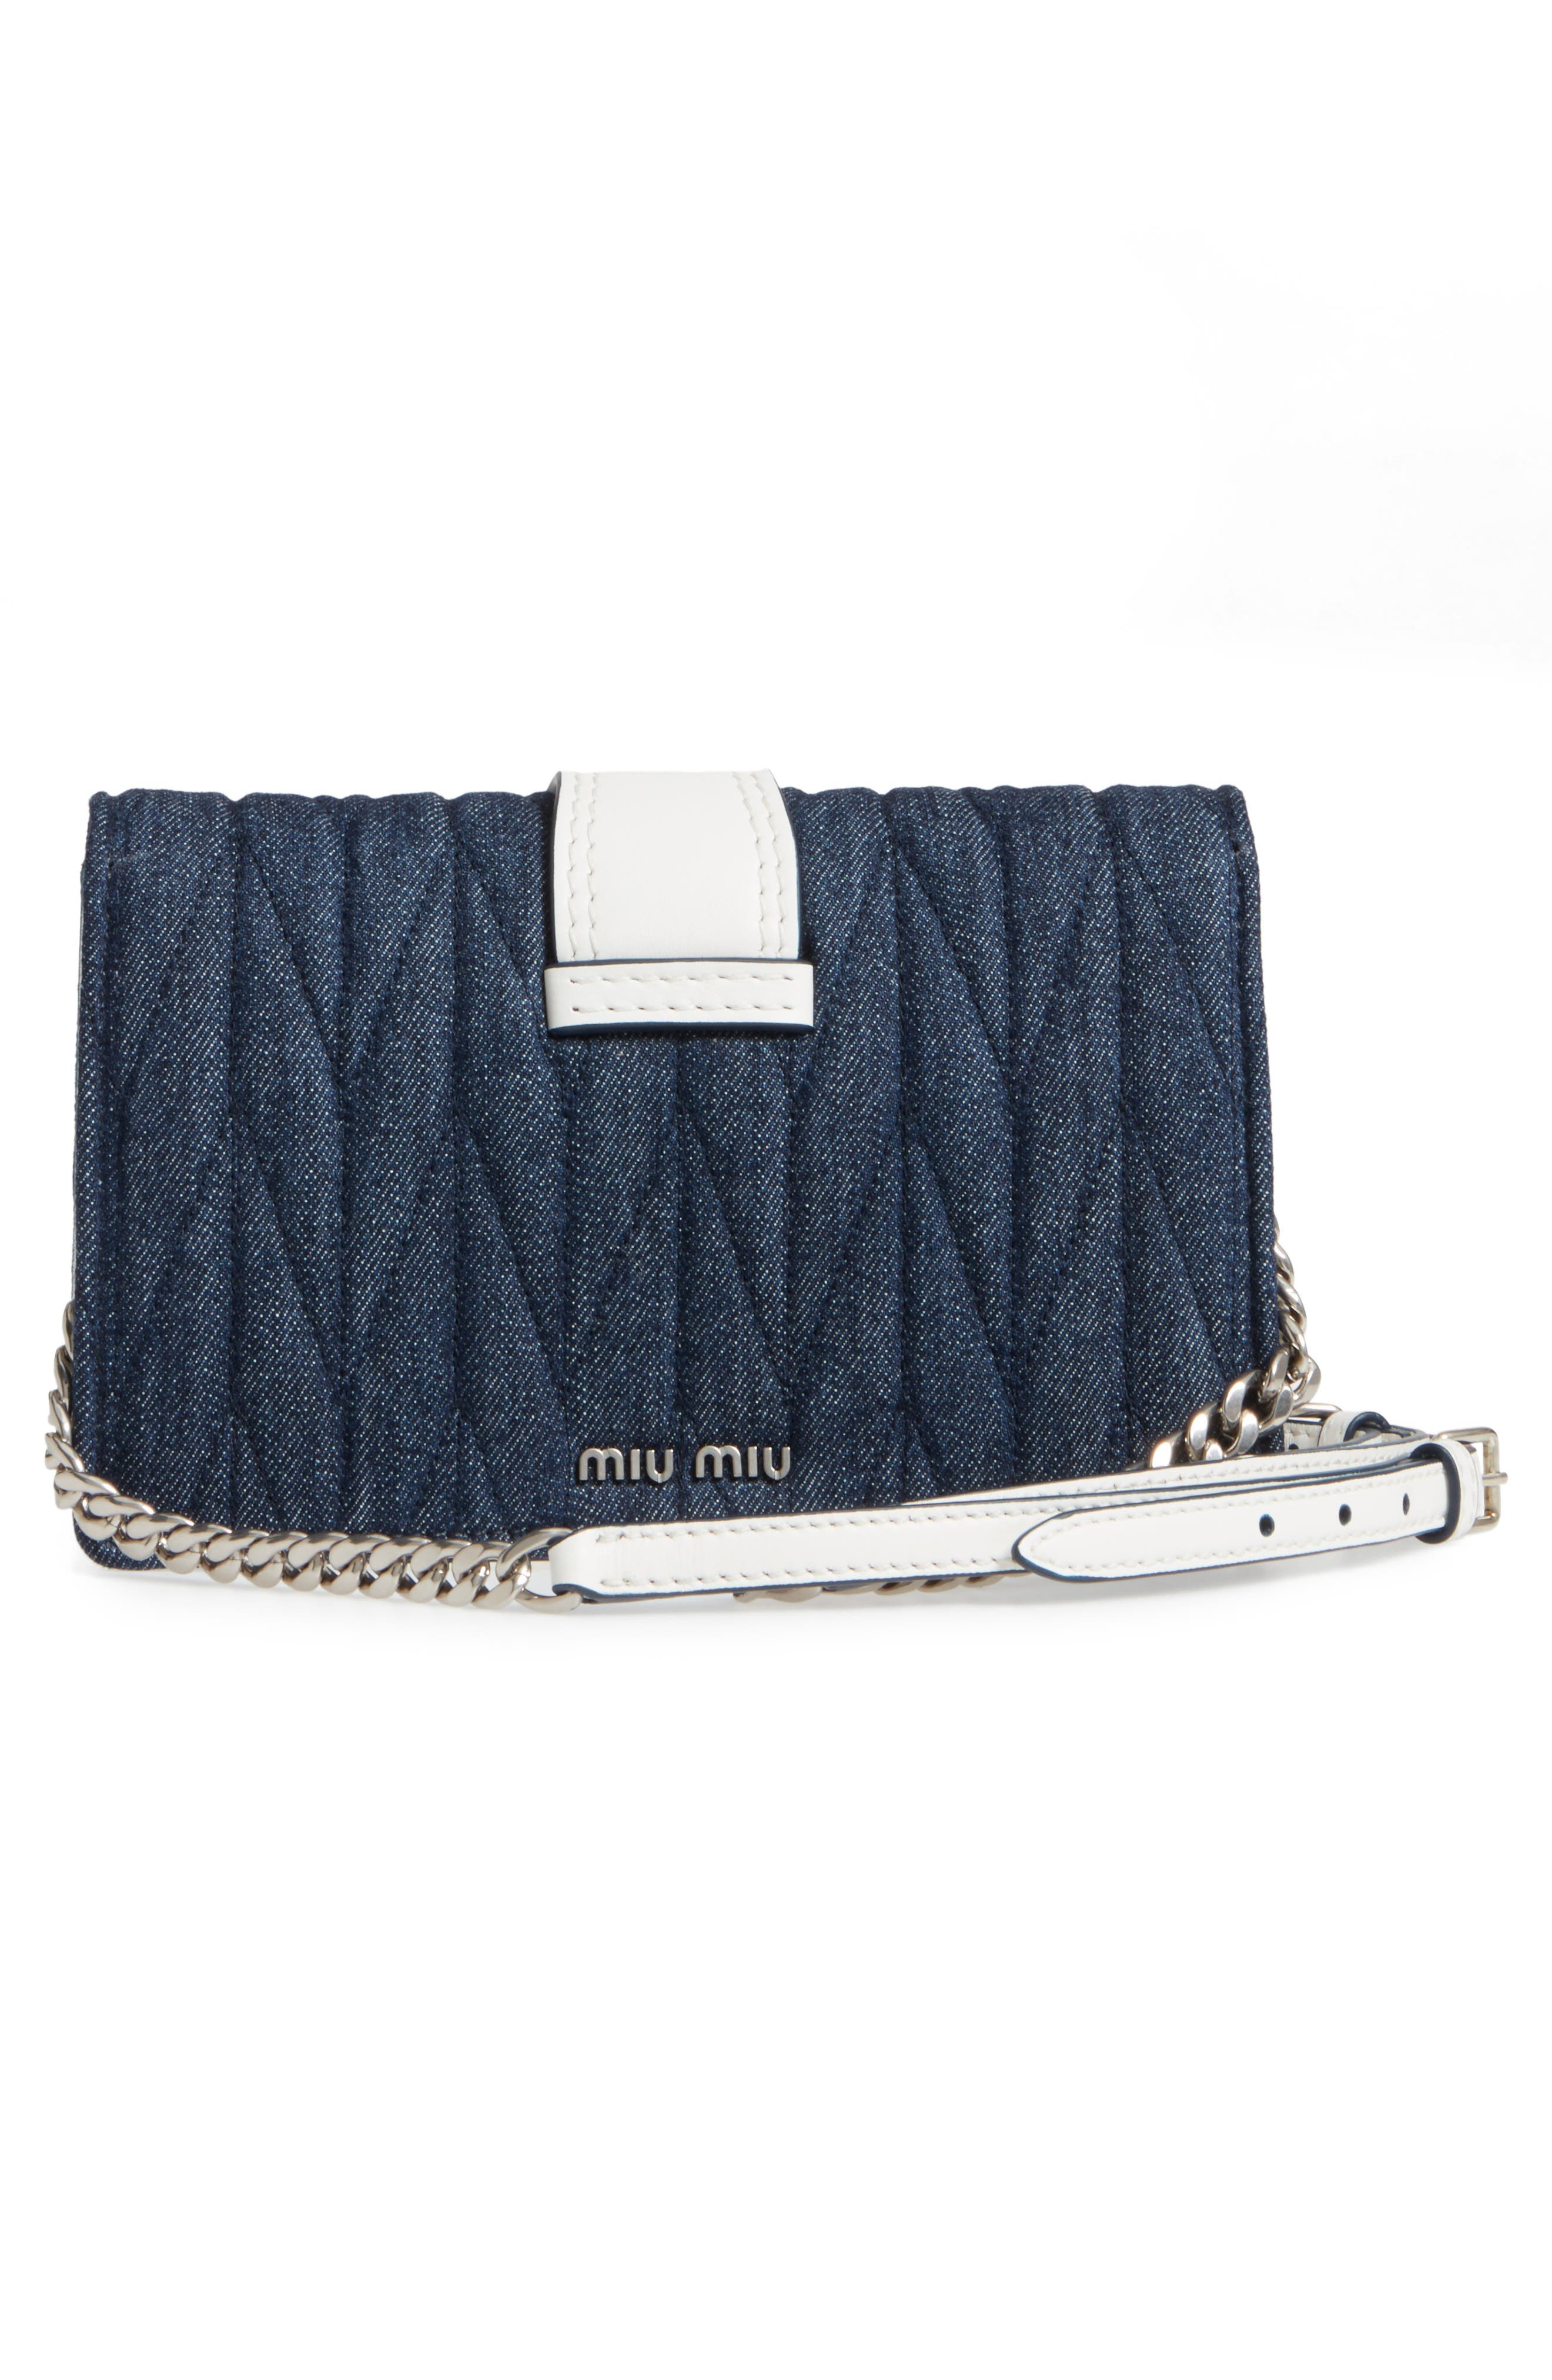 Matelassé Denim Embellished Shoulder Bag,                             Alternate thumbnail 3, color,                             Blu/ Bianco